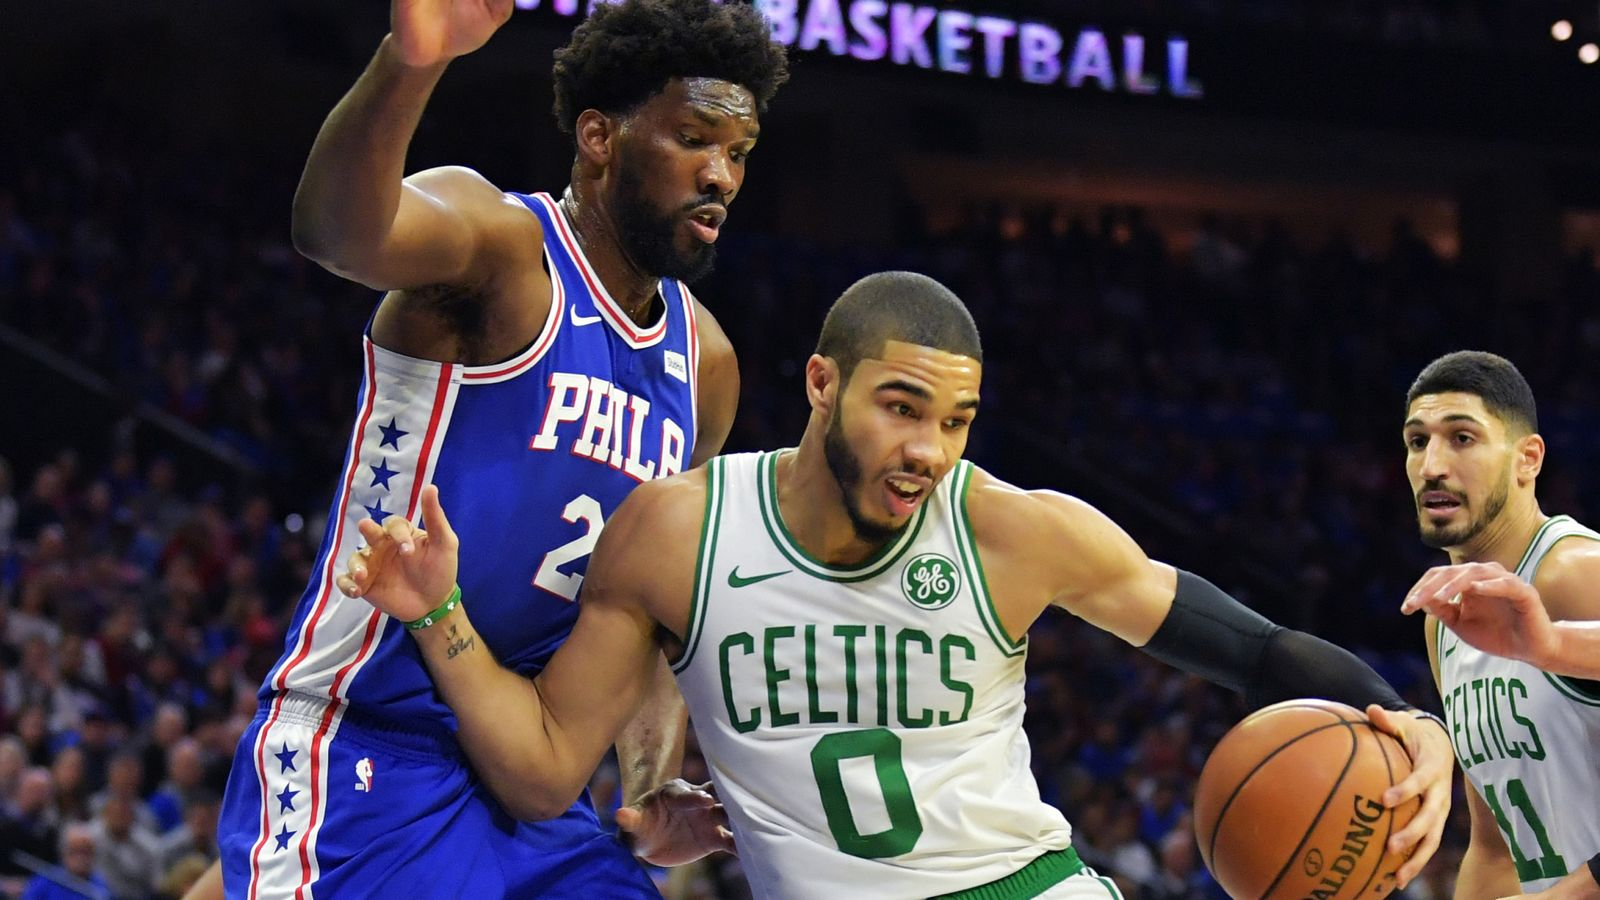 Boston Celtics playoff hopes could be match-up dependent, says Abby Chin